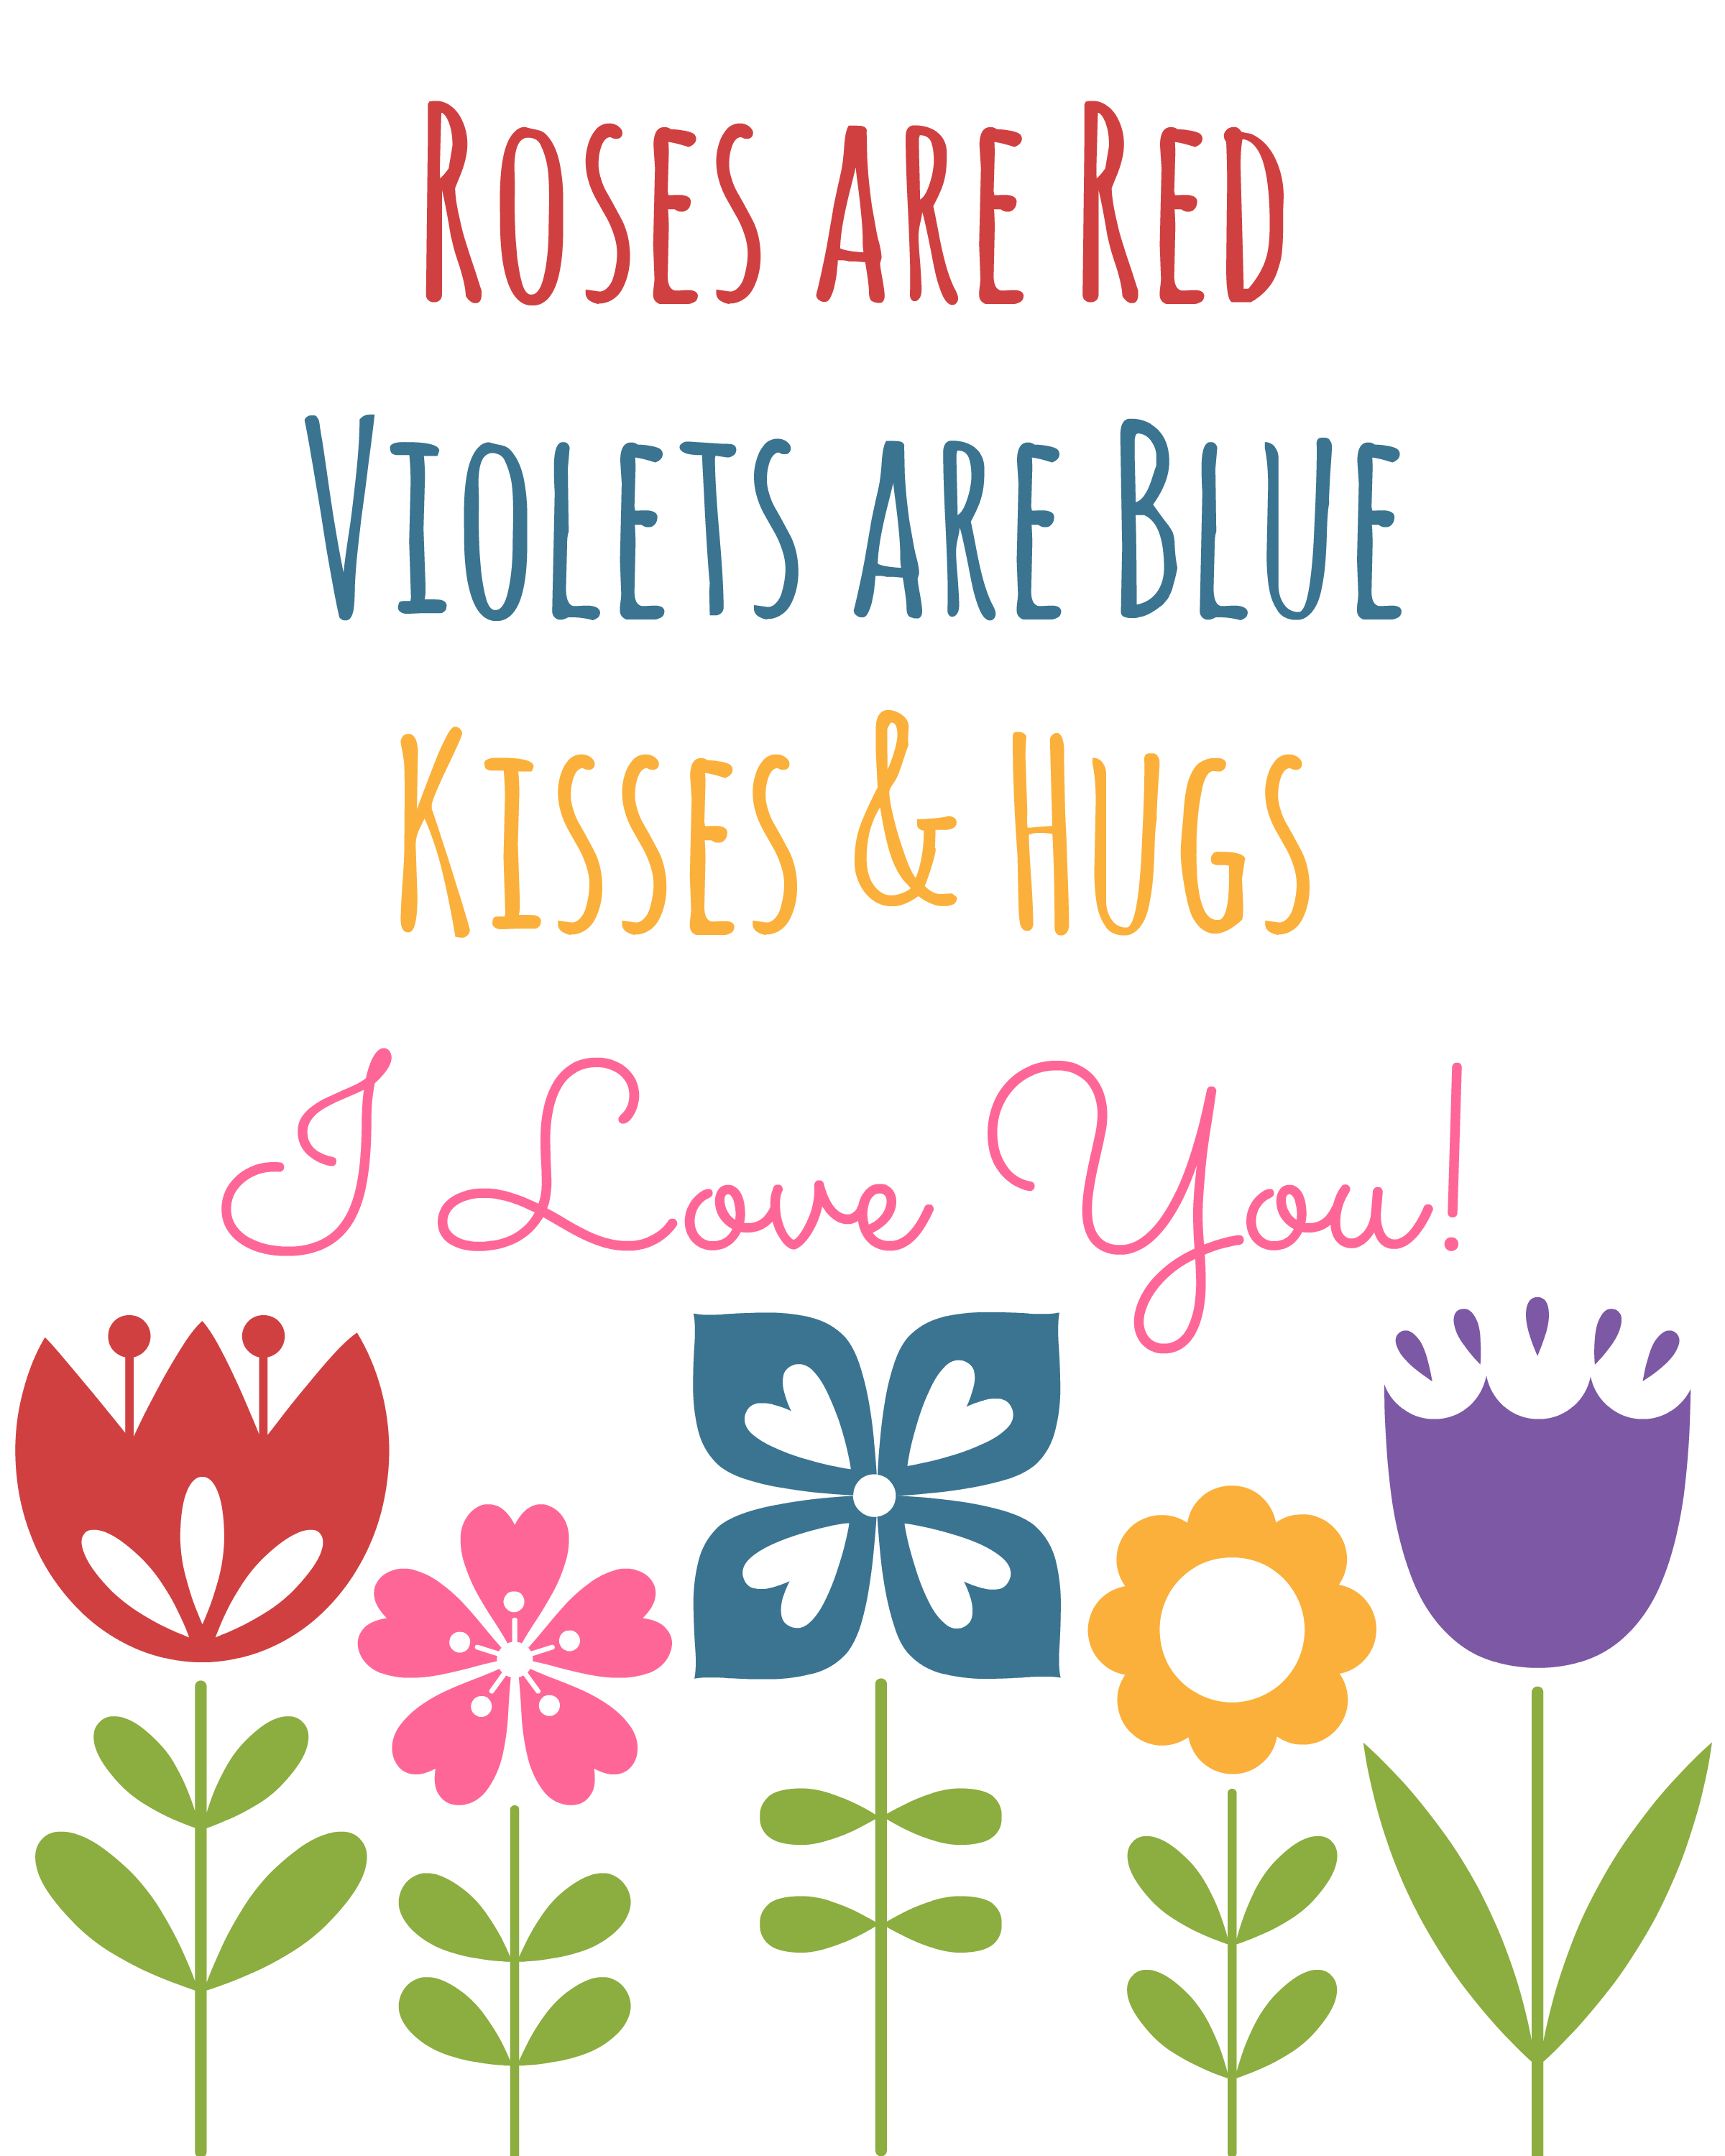 I Love You Poems: I Love You Poems For The One You Love